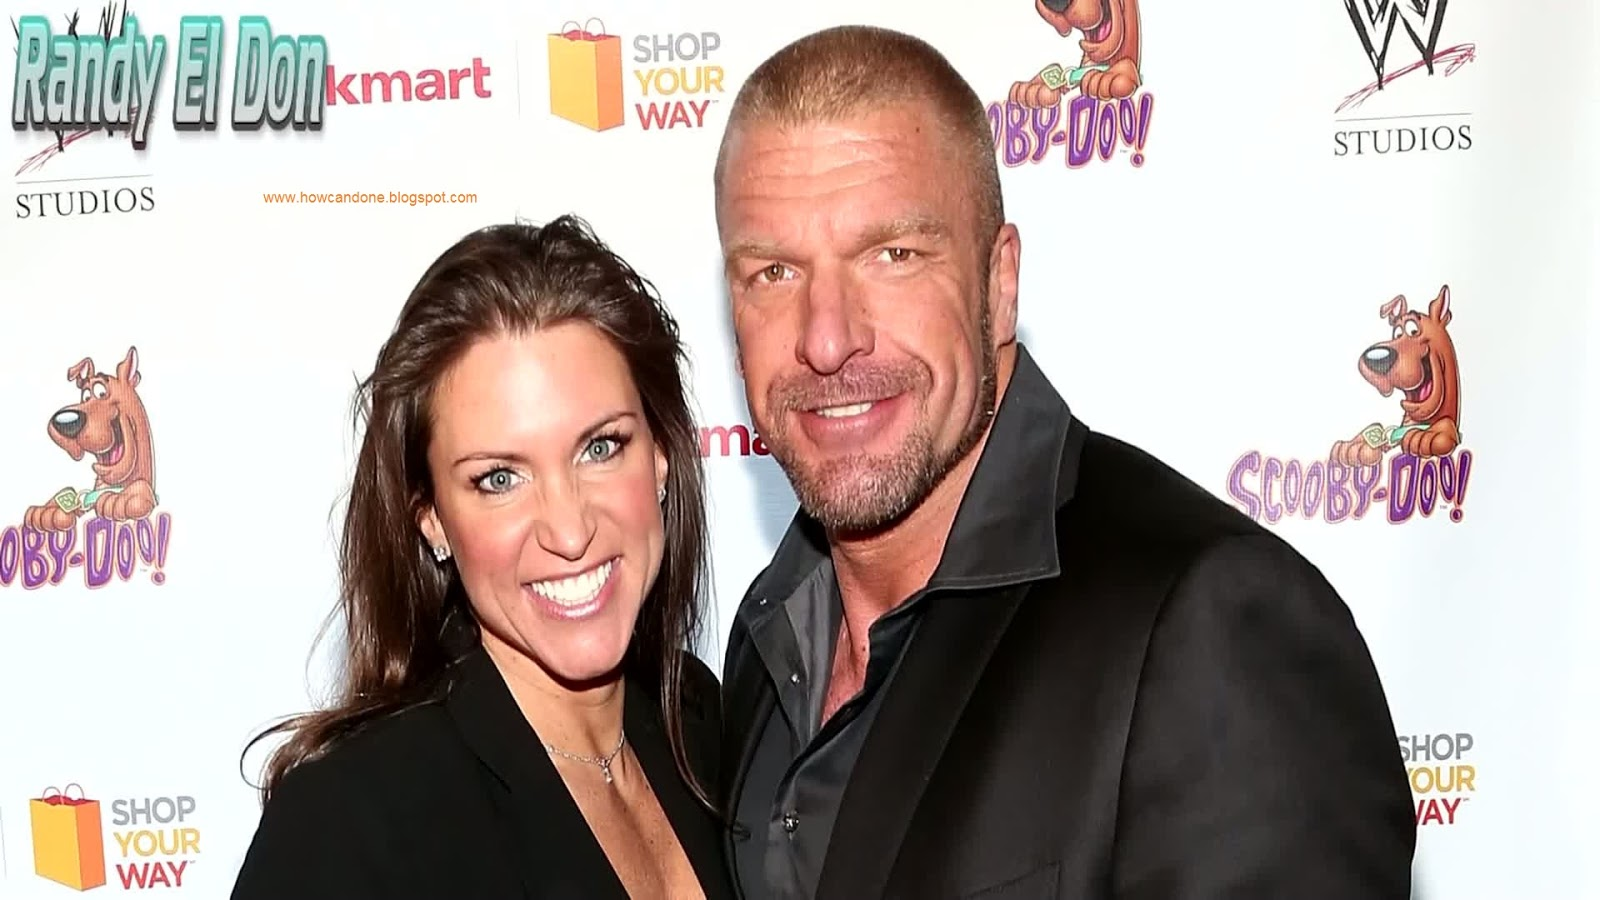 wwe superstars and divas dating in real life Wwe is an american professional their ring name is on the left and their real name is on wwe refers to all in-ring performers as superstars.